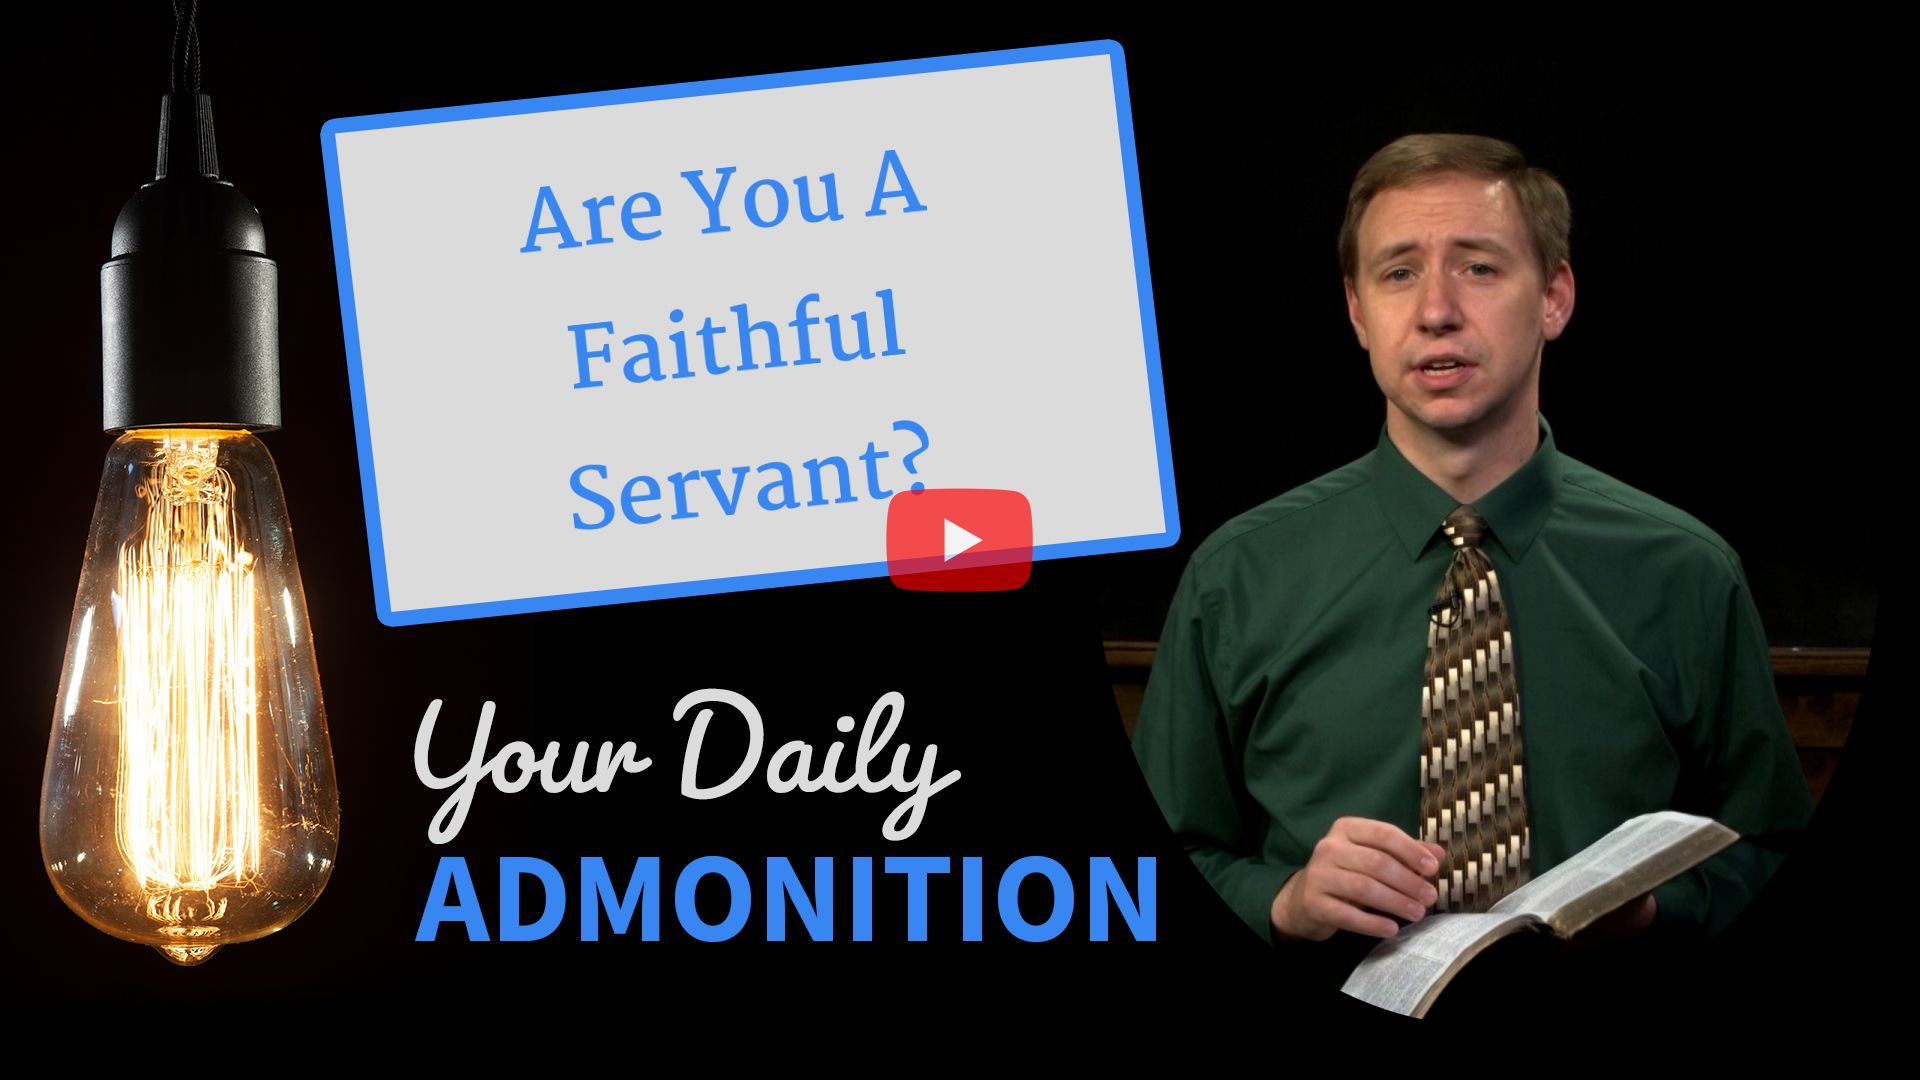 Are You A Faithful Servant?